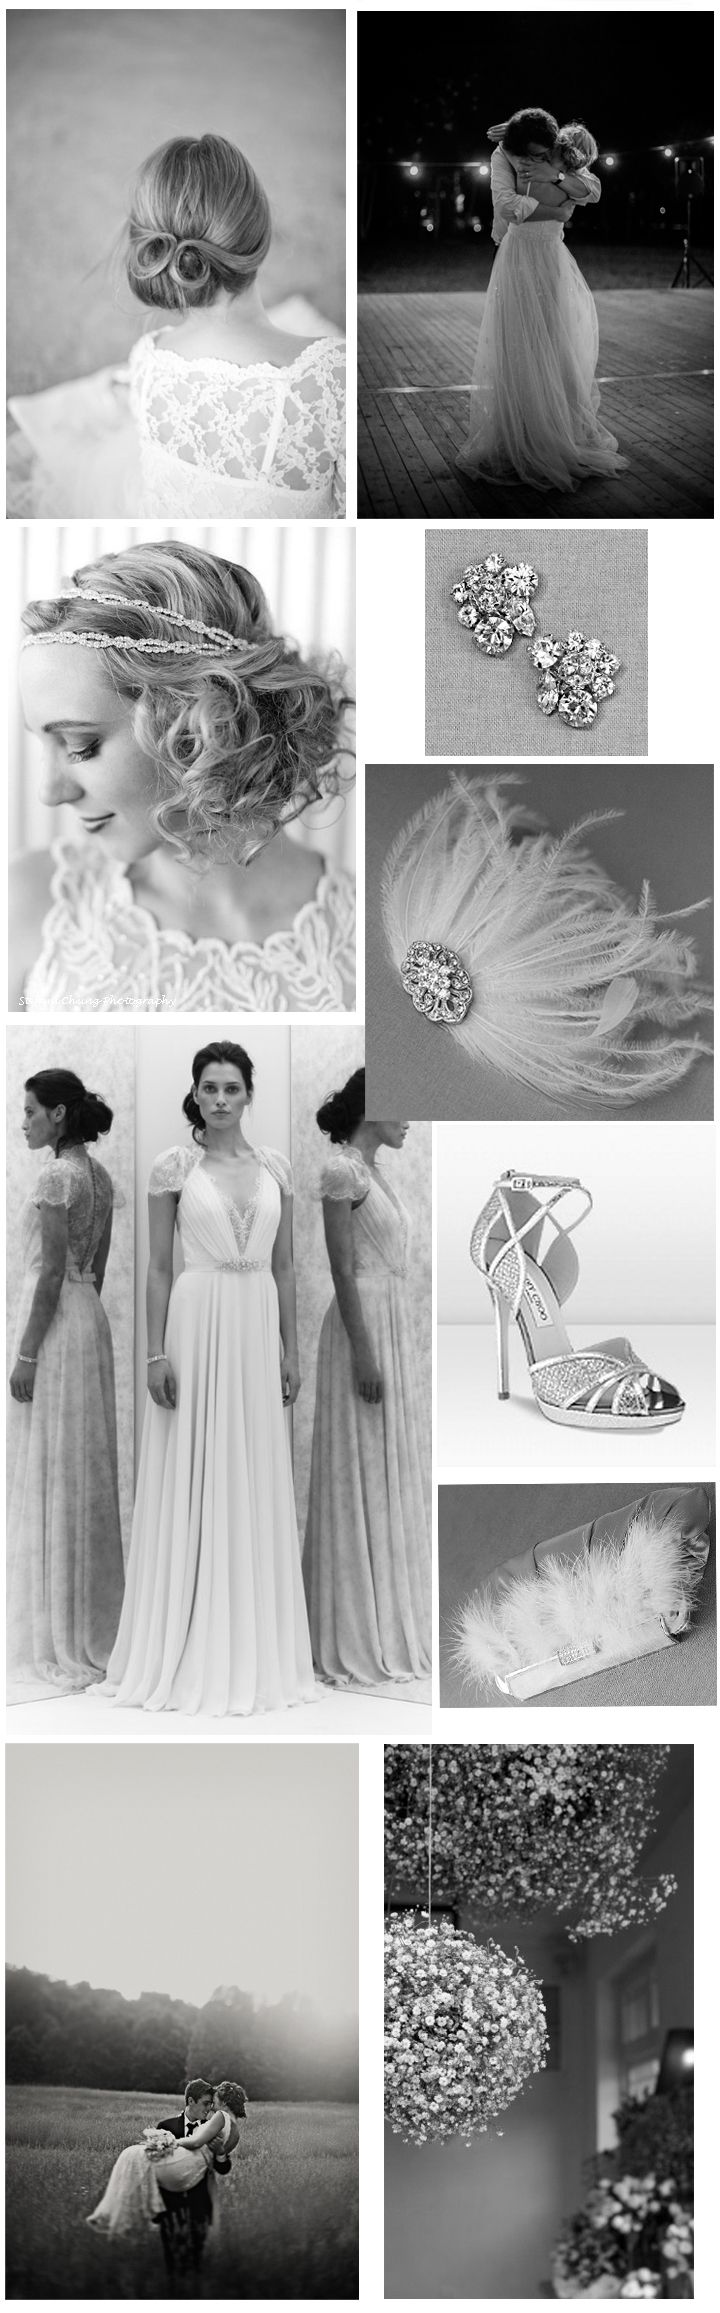 The 167 best The Great Gatsby images on Pinterest | Gatsby party ...